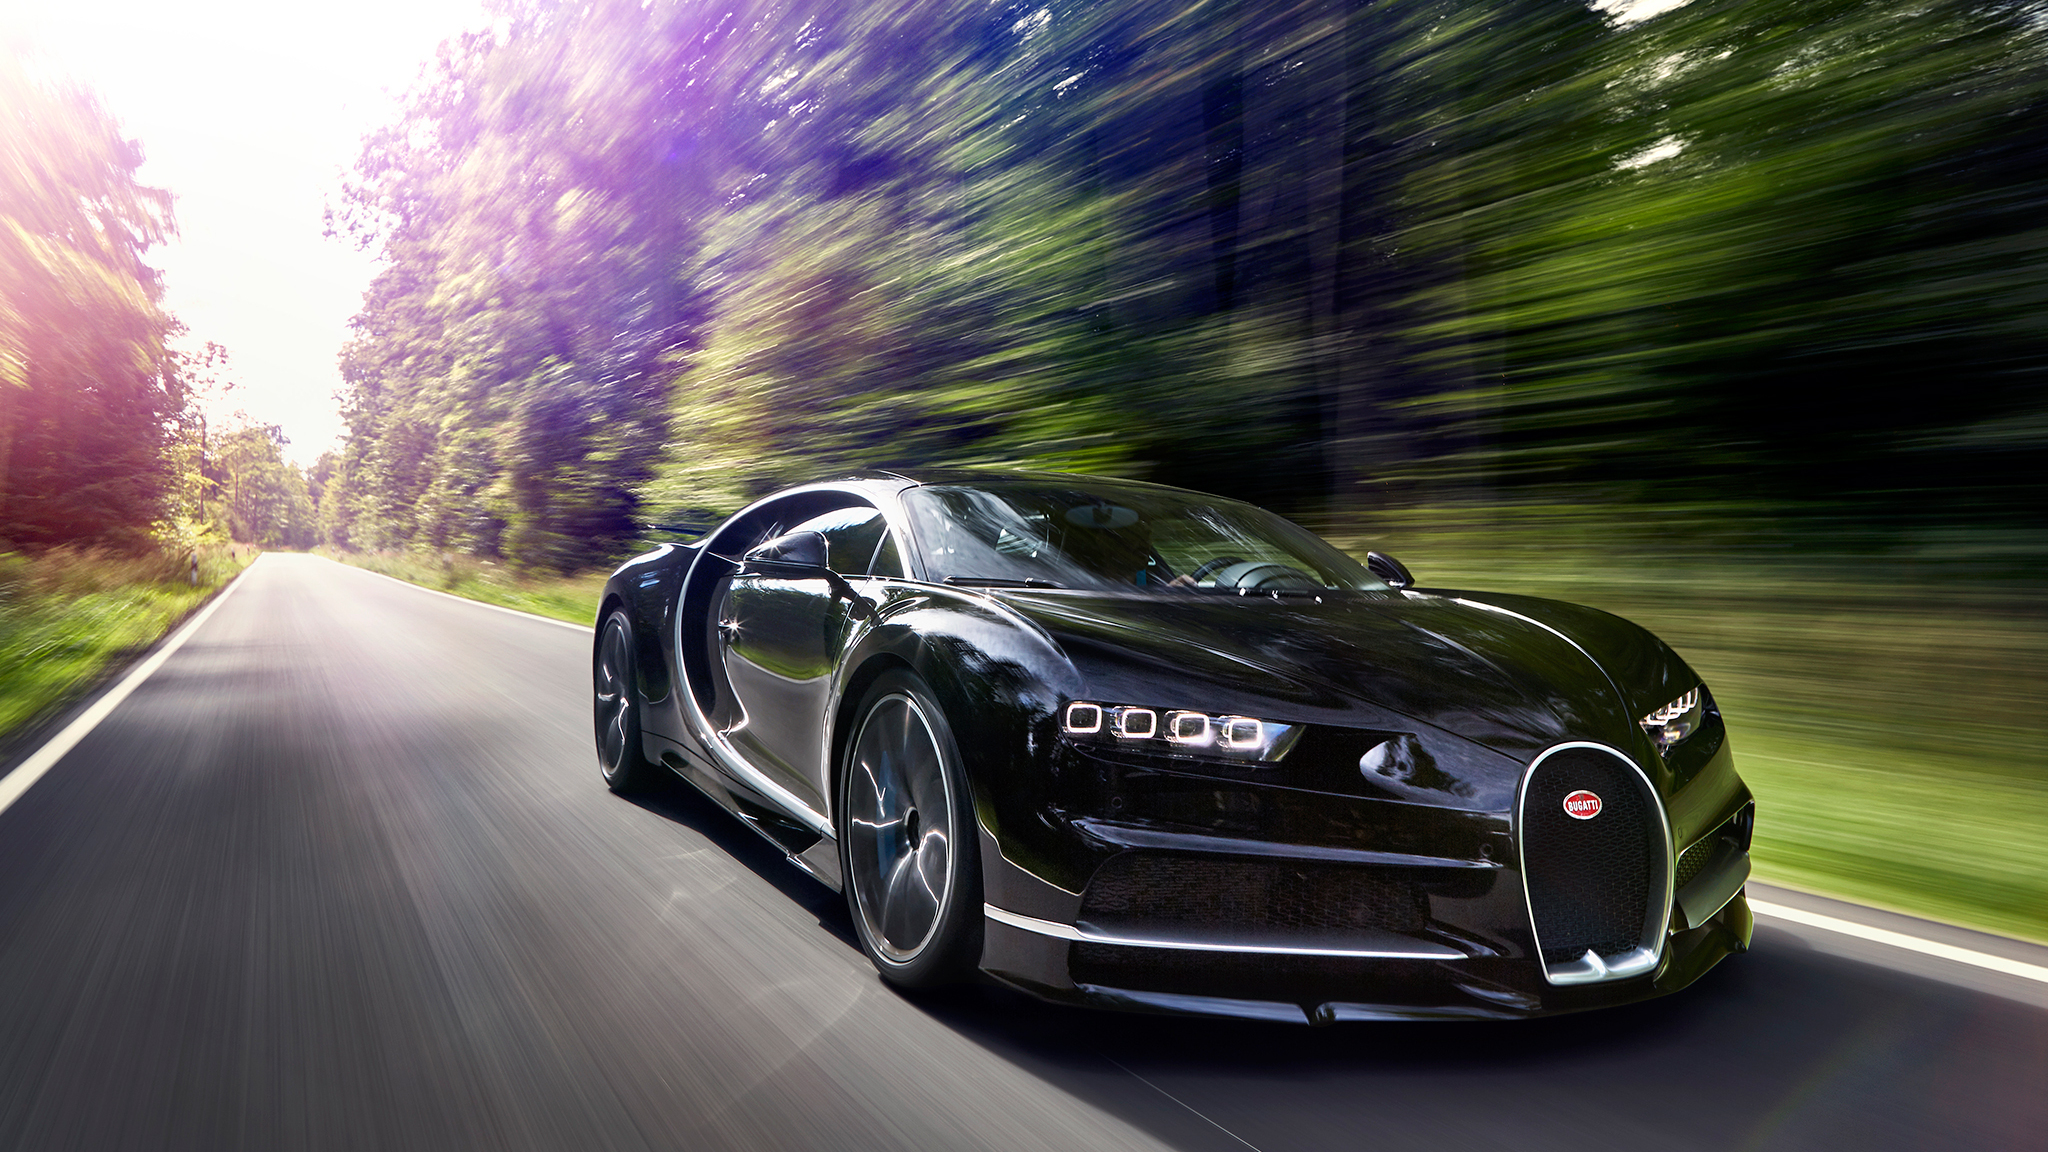 2048x1152 2017 Bugatti Chiron In Motion 2048x1152